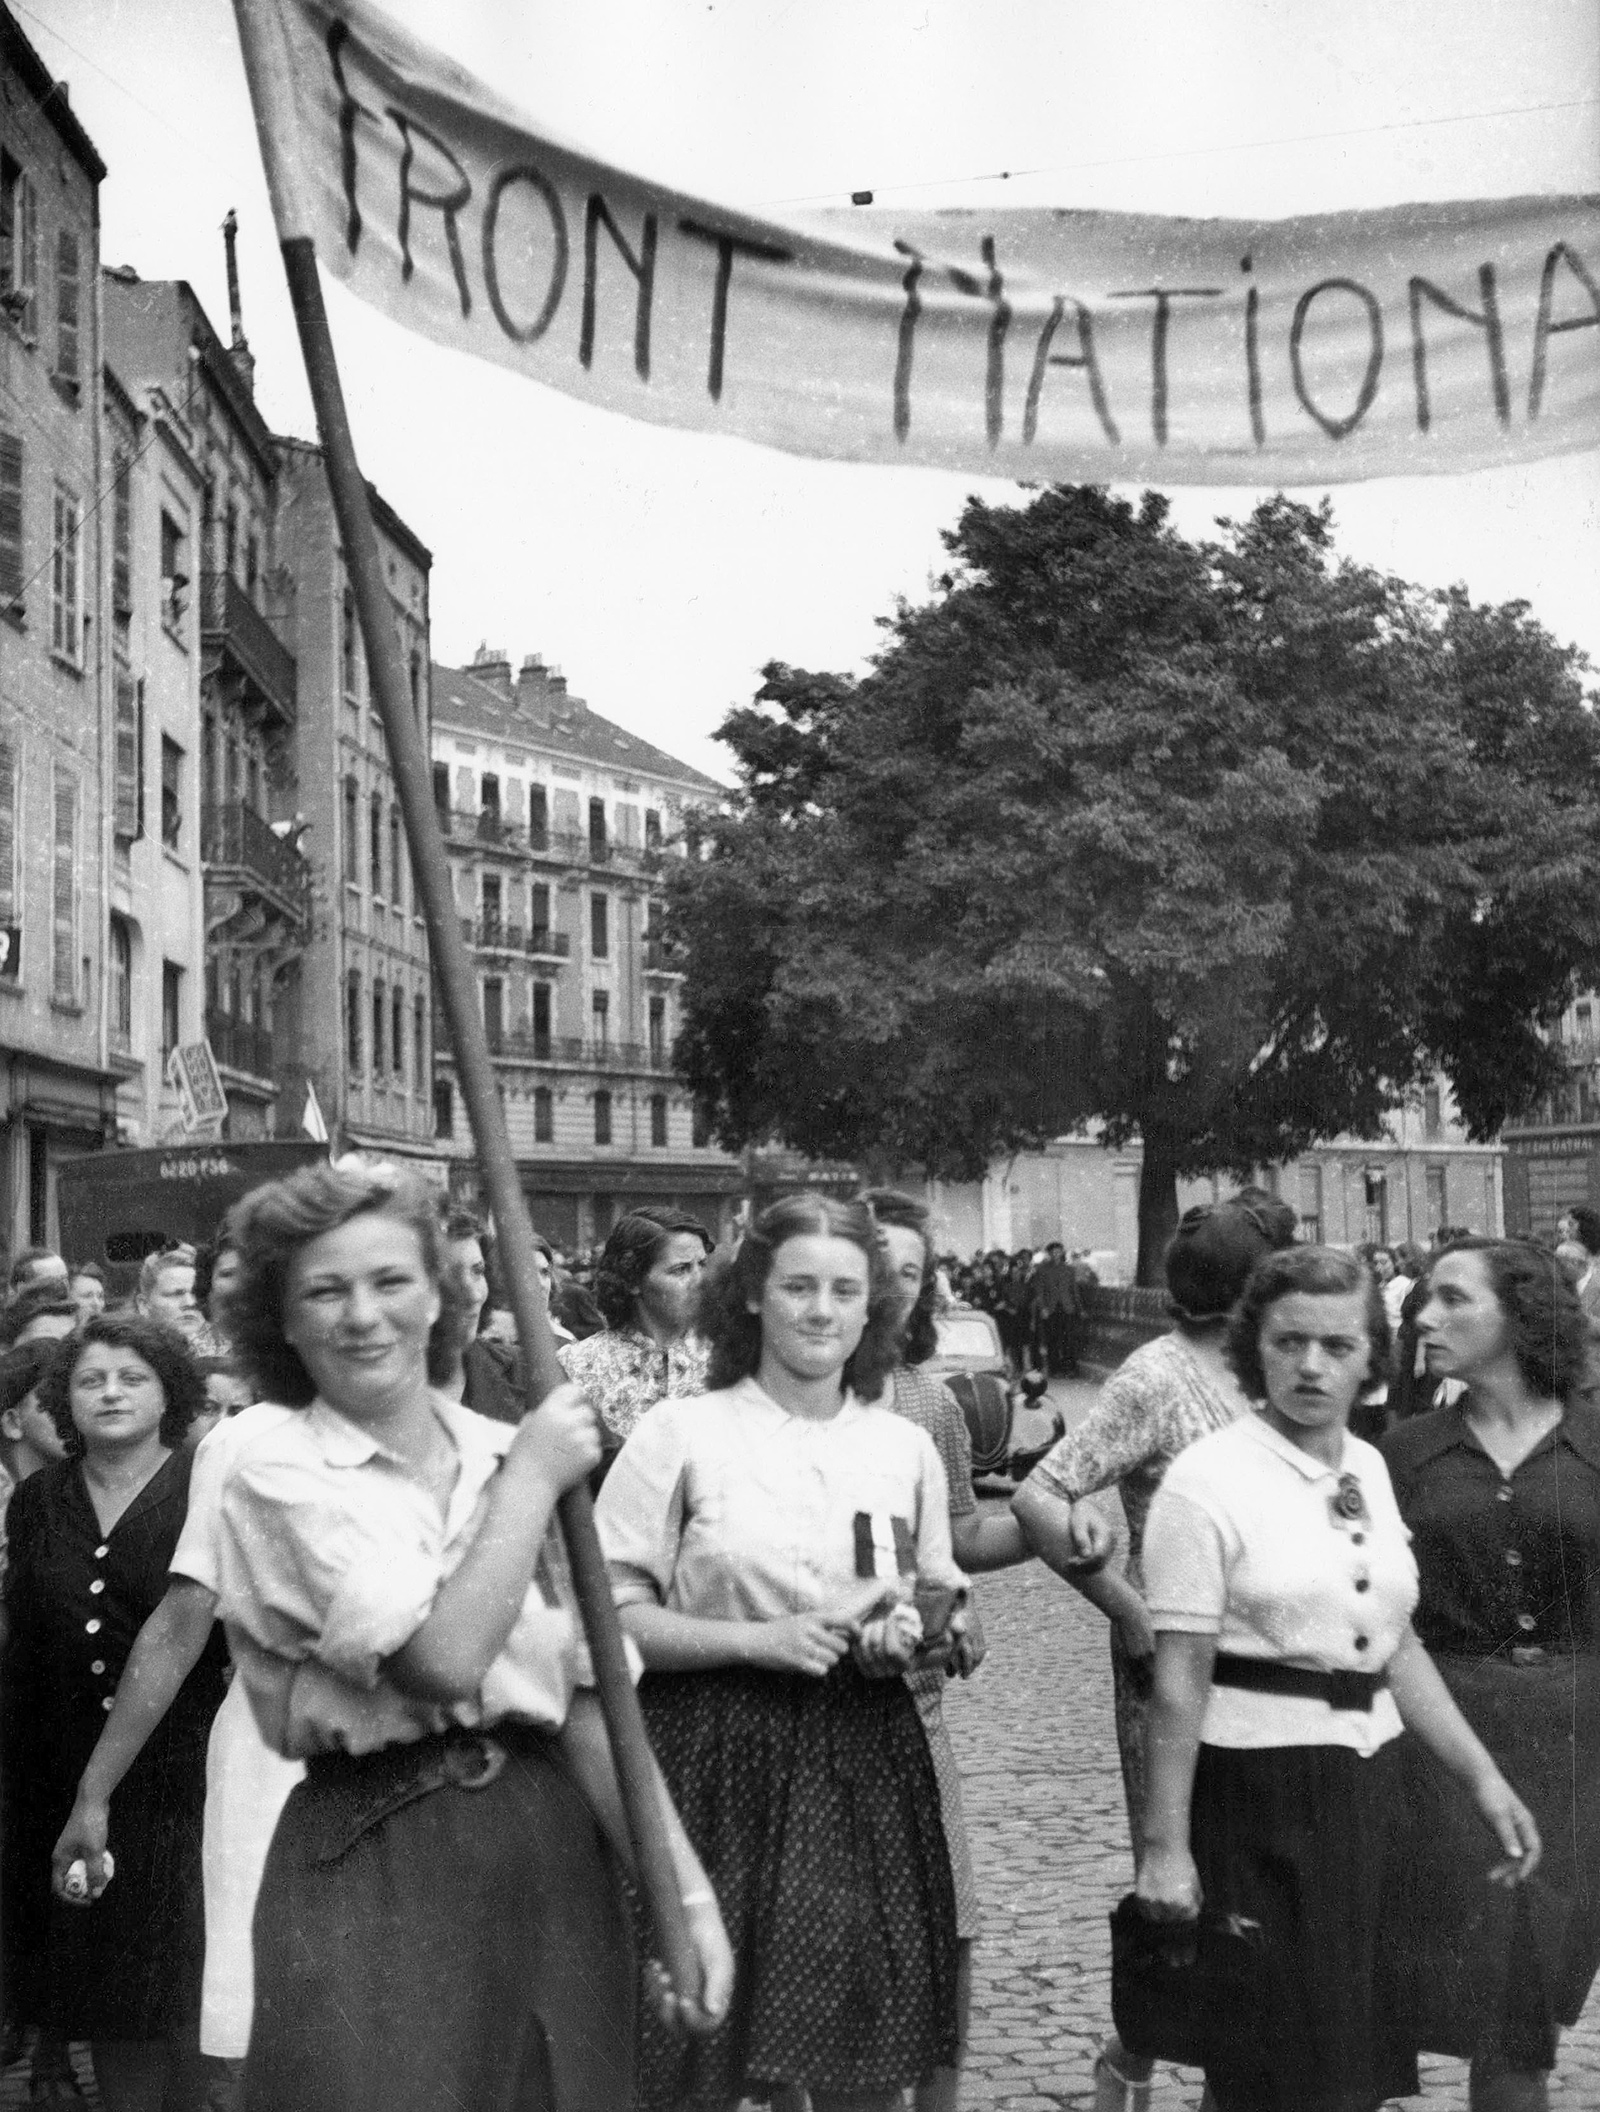 Women of the National Front, a resistance organization started by members of the Communist Party in 1941, celebrating the liberation of Toulouse, August 21, 1944